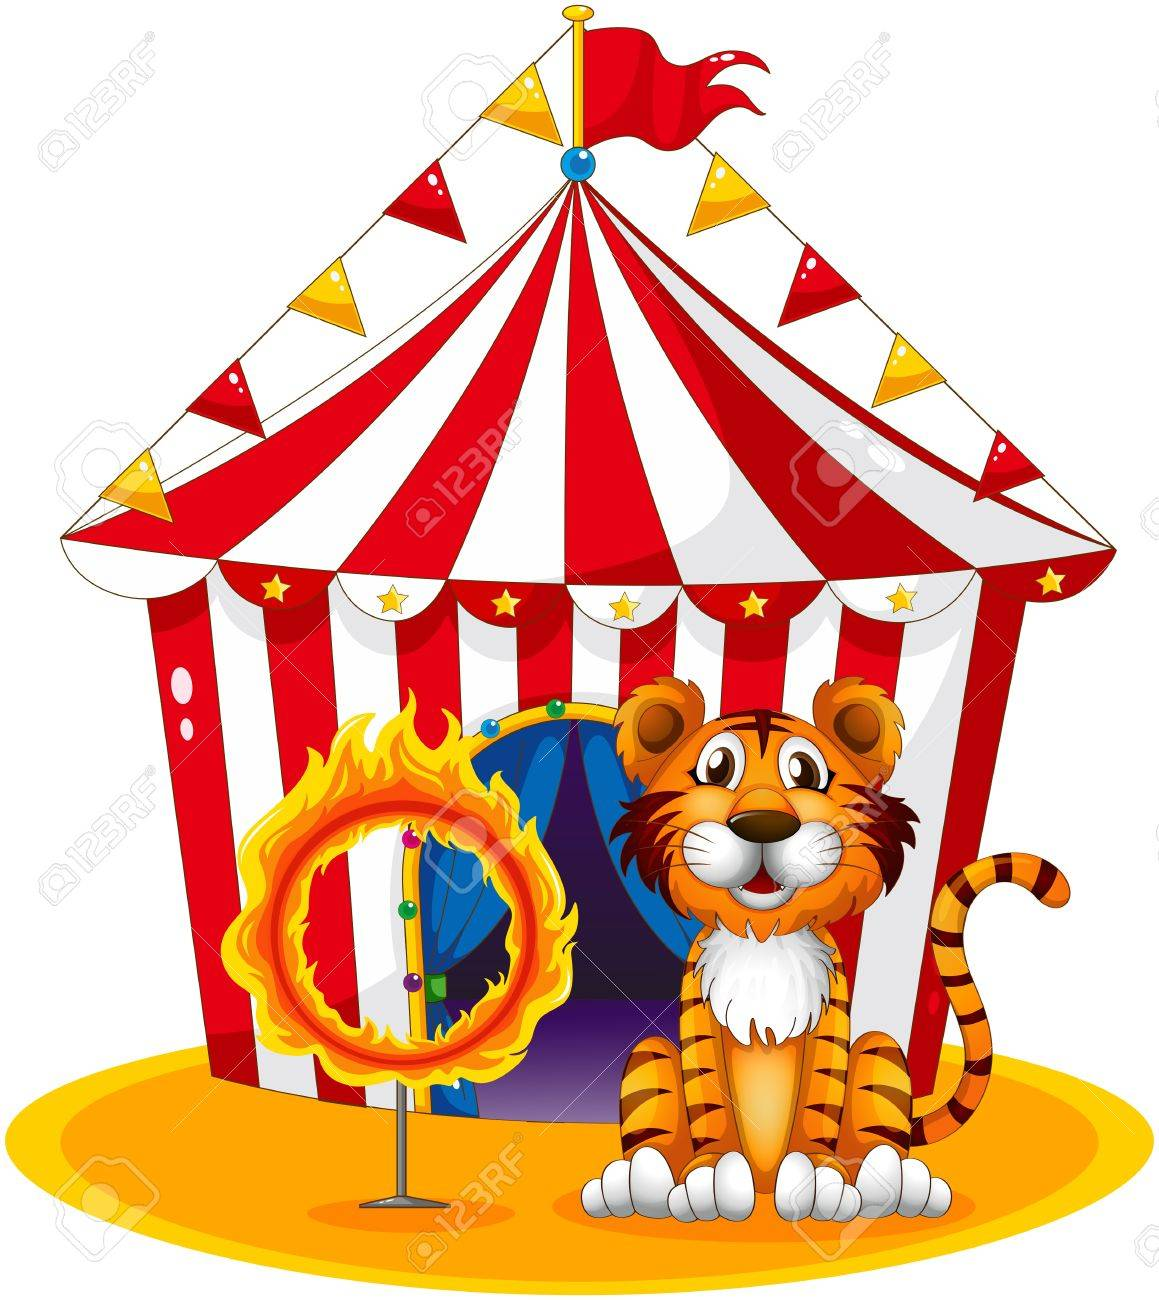 Illustration of a circus tent at the back of the tiger and the ring of fire on a white background Stock Vector - 18789447